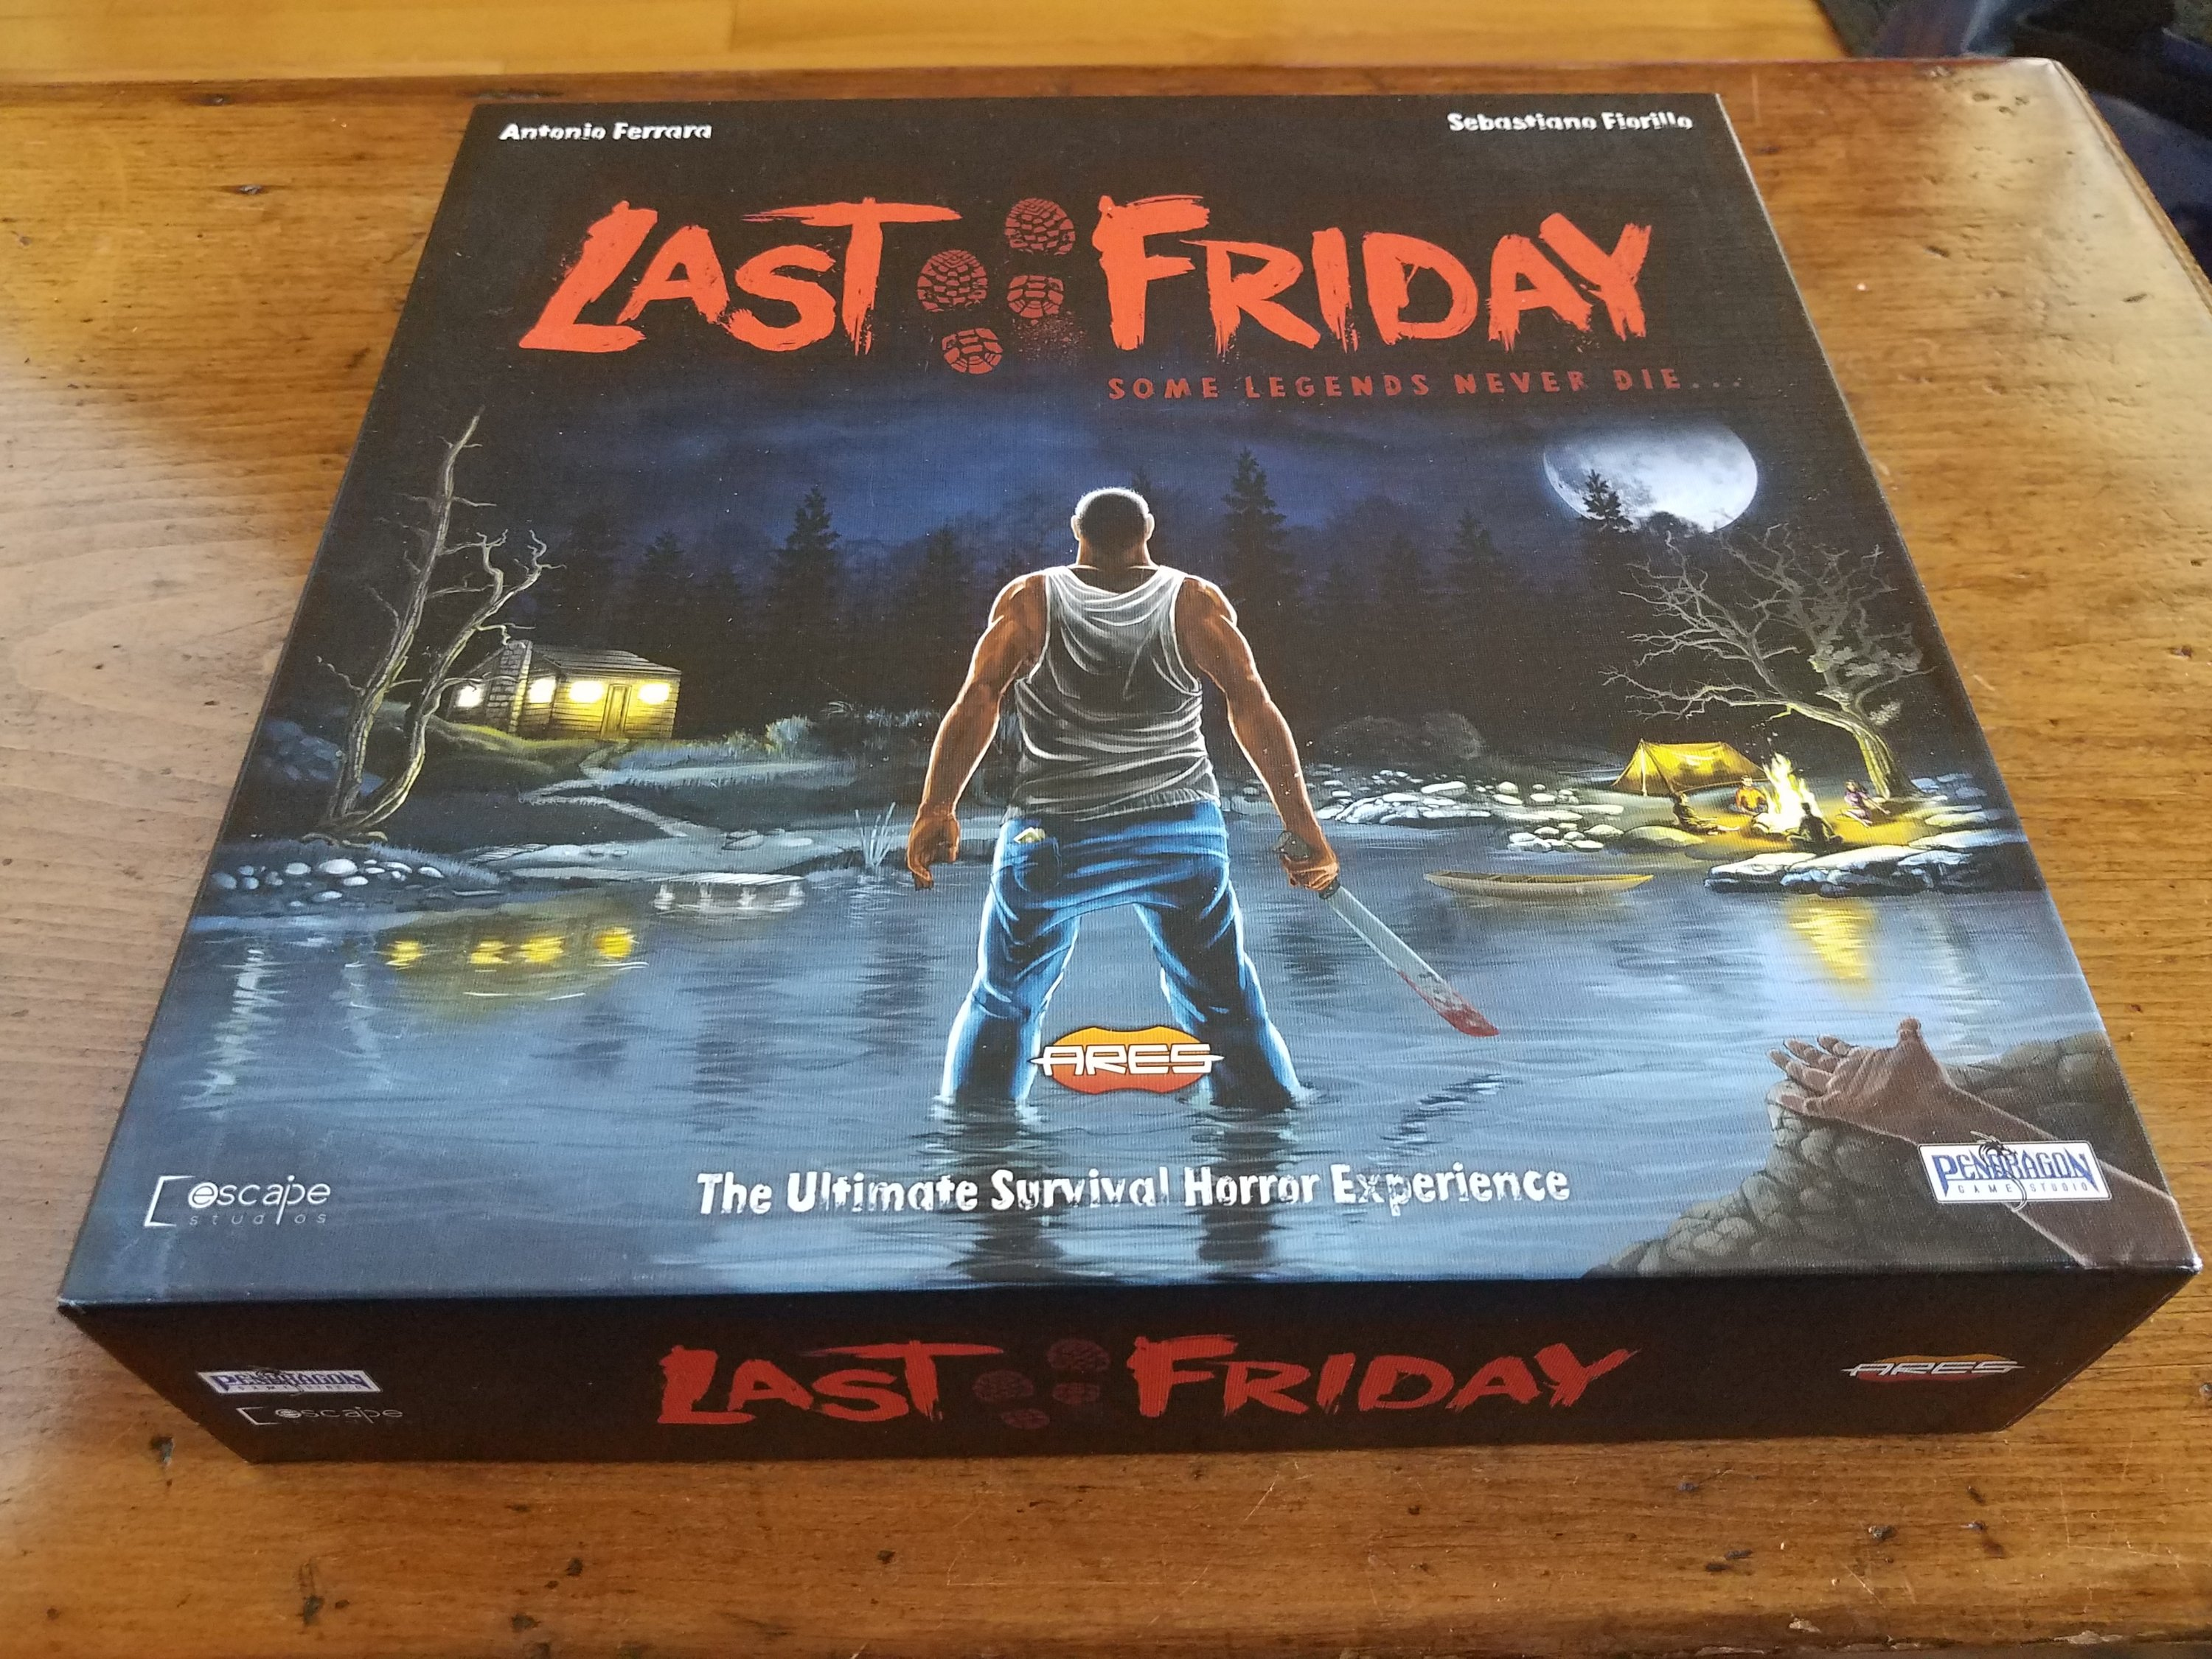 Last Friday board game cover